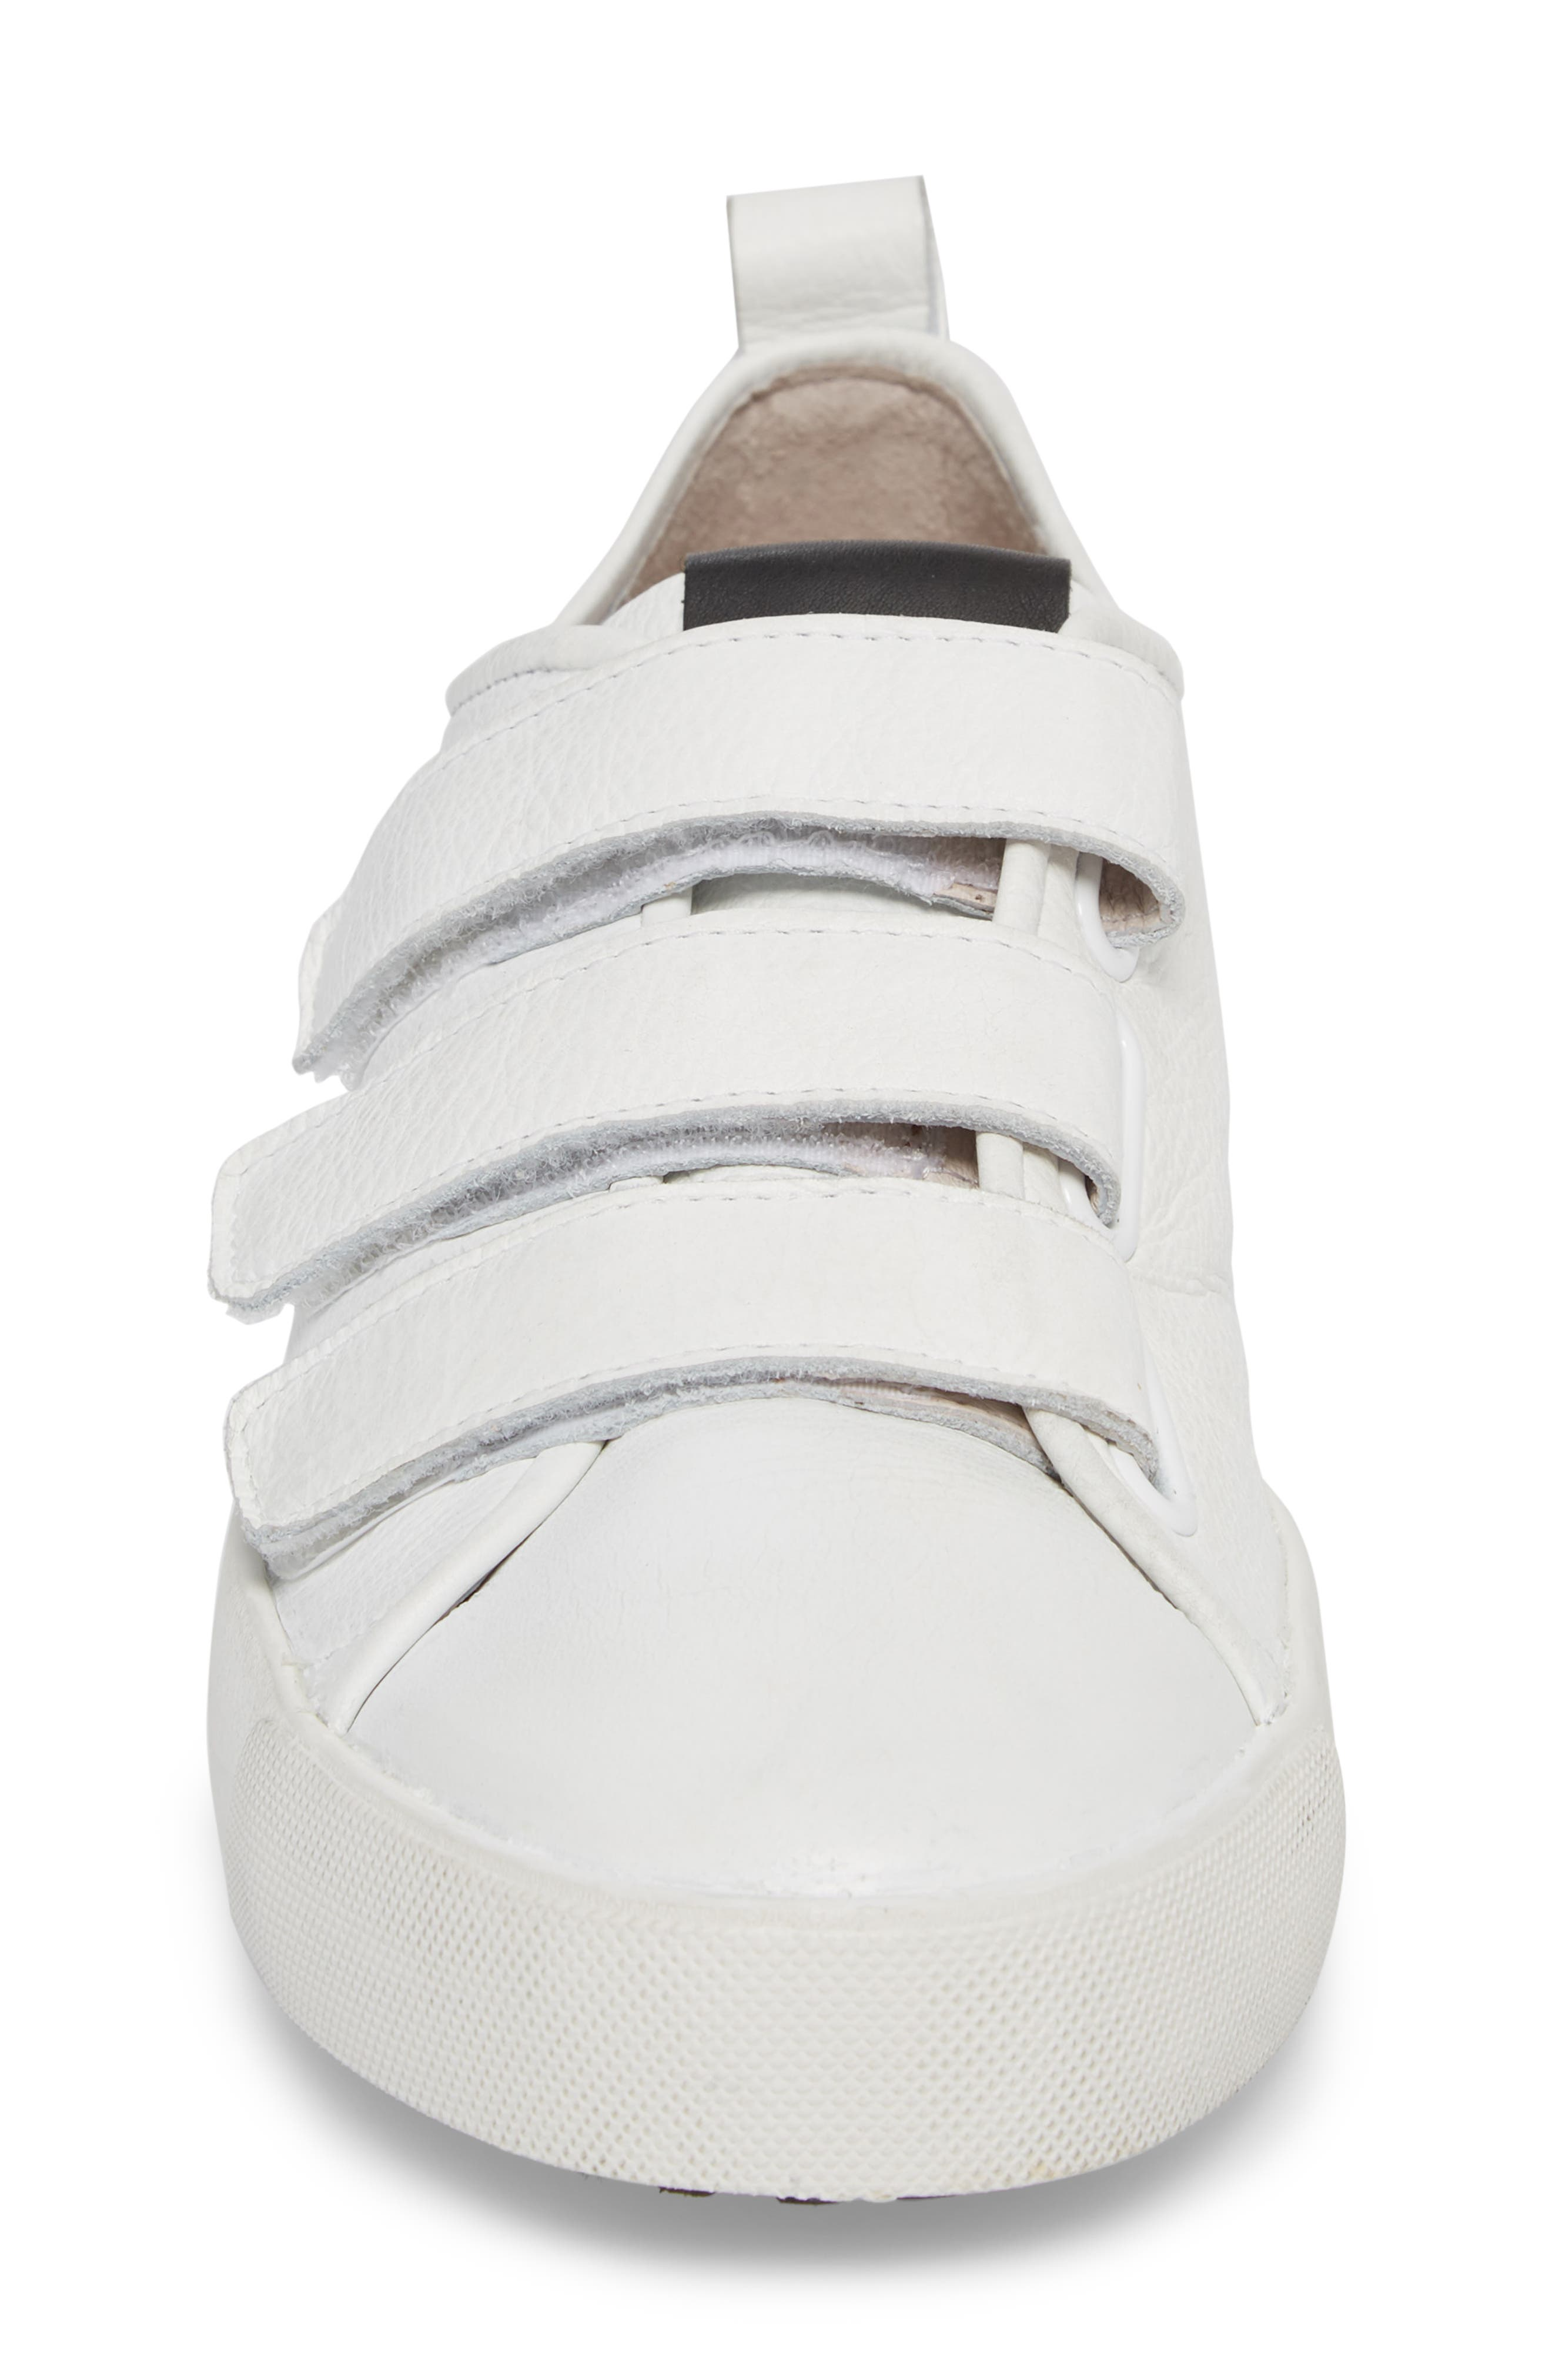 PM41 Low Top Sneaker,                             Alternate thumbnail 4, color,                             WHITE LEATHER